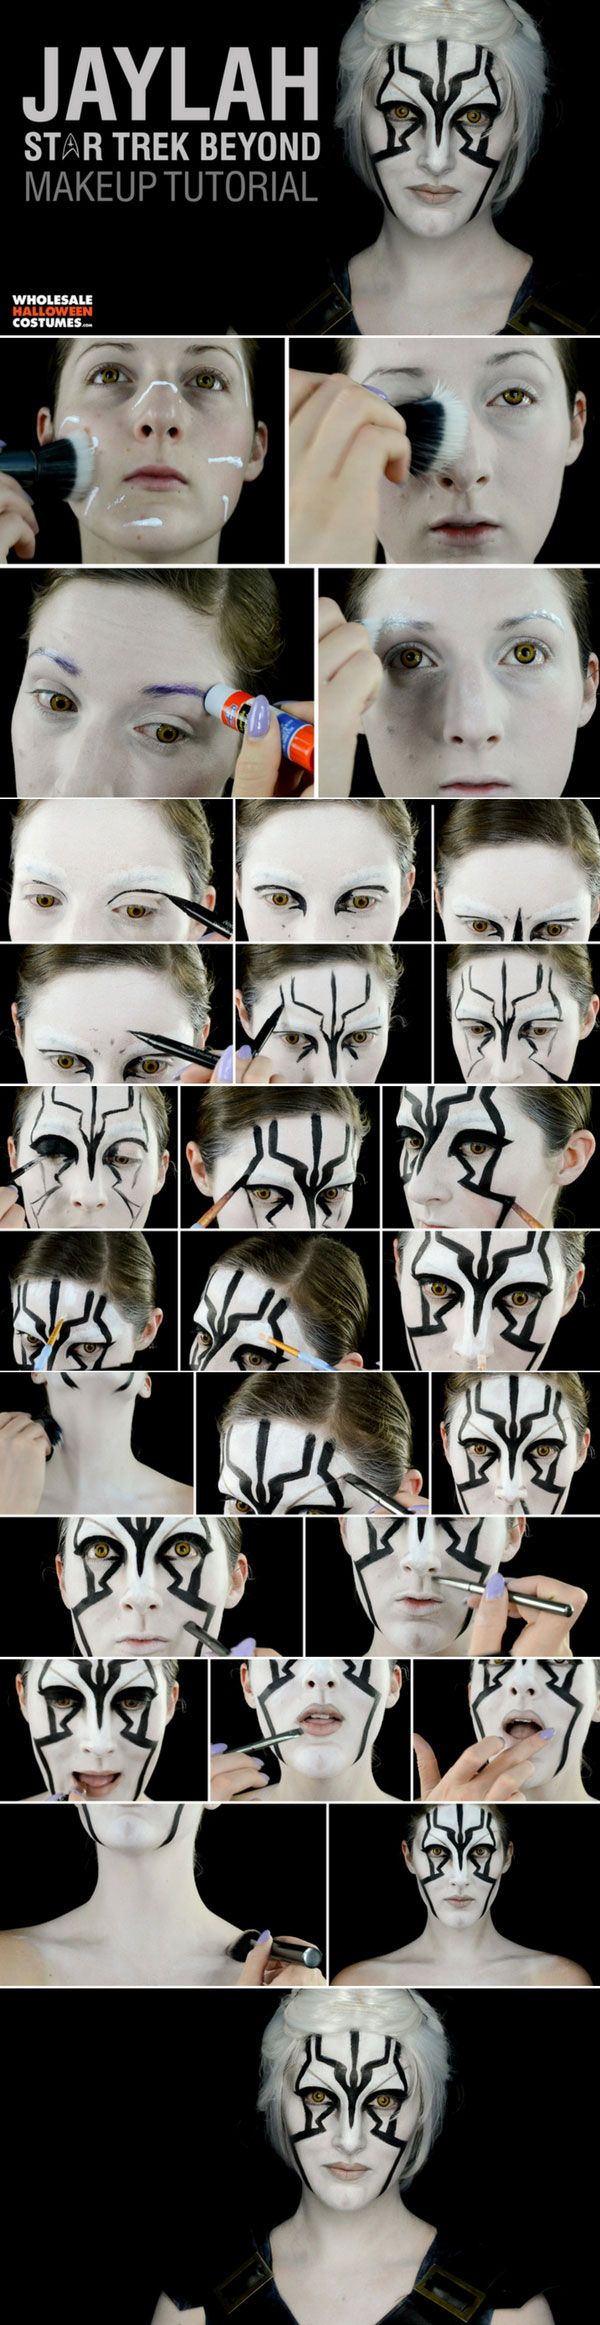 Find out how to get Jaylah's out of this world look from Star Trek Beyond with this makeup tutorial!